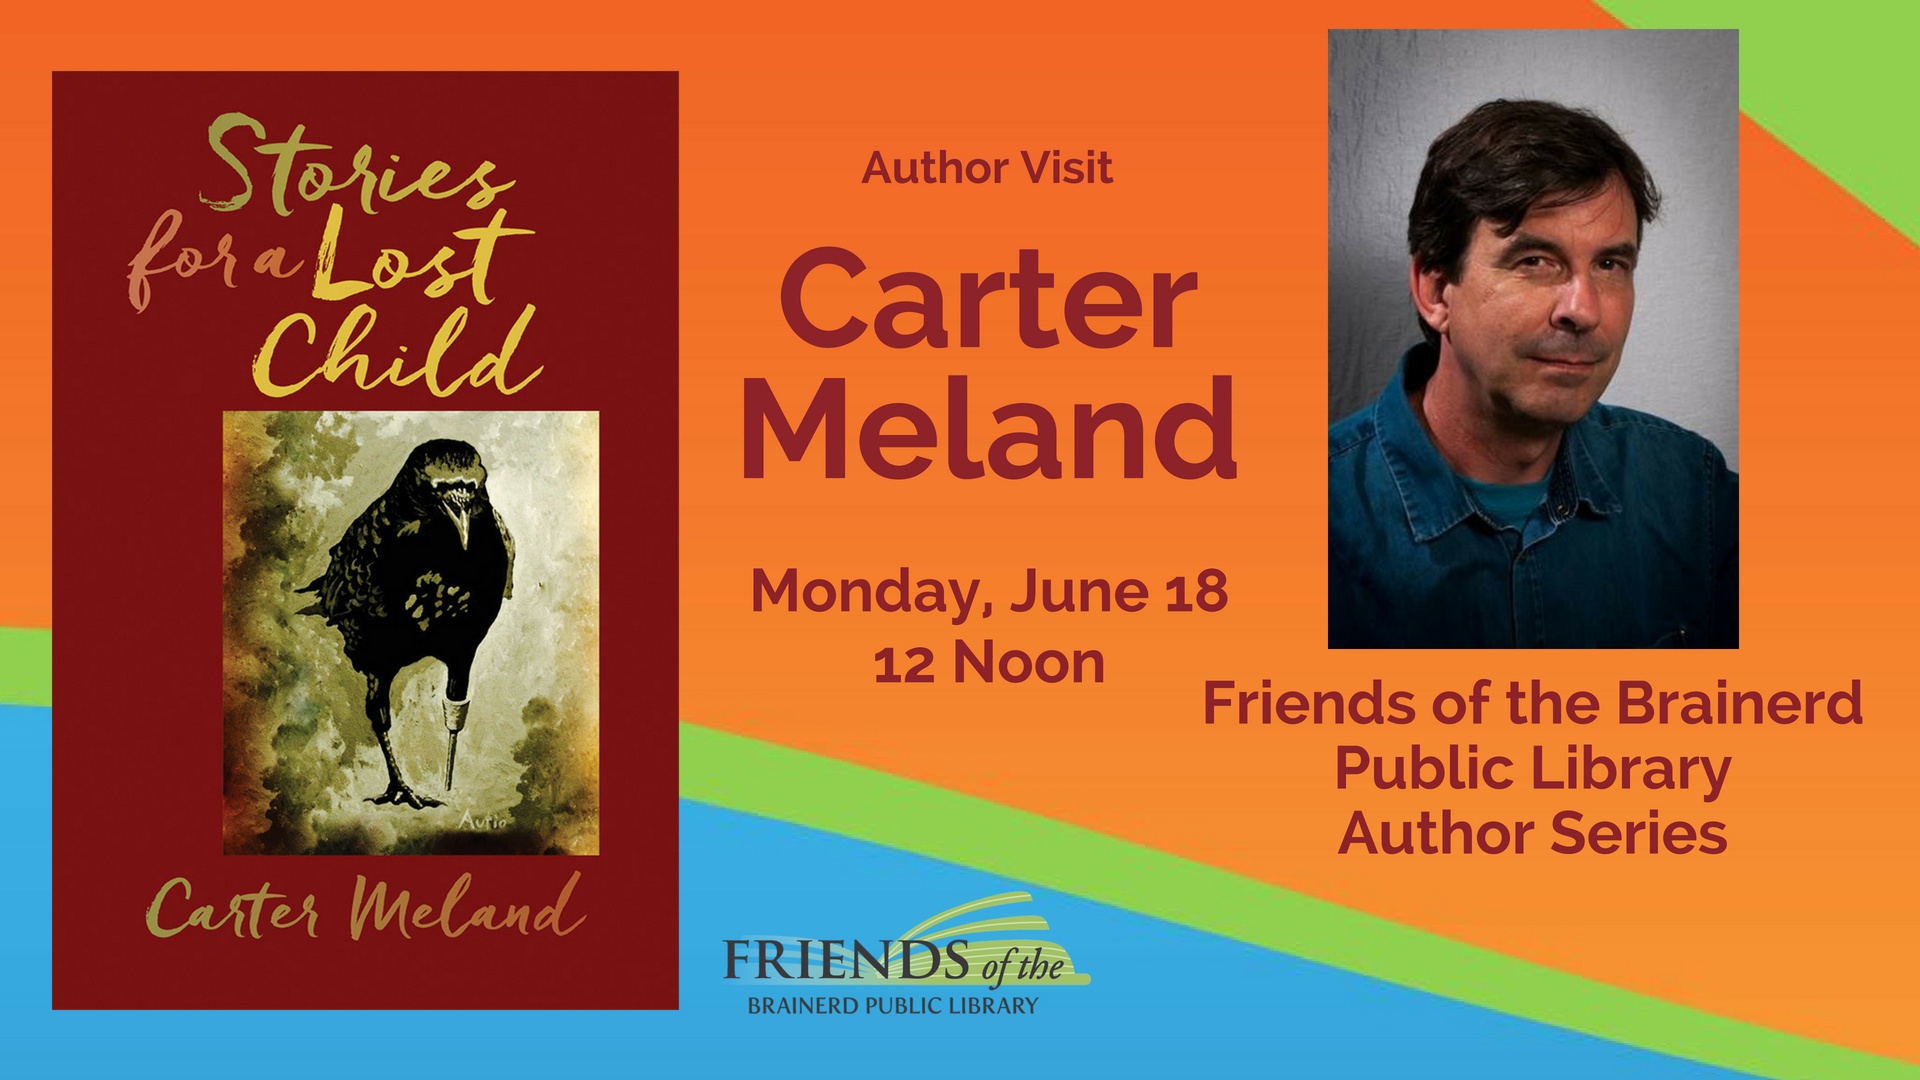 Brown Bag Author Visit: Carter Meland